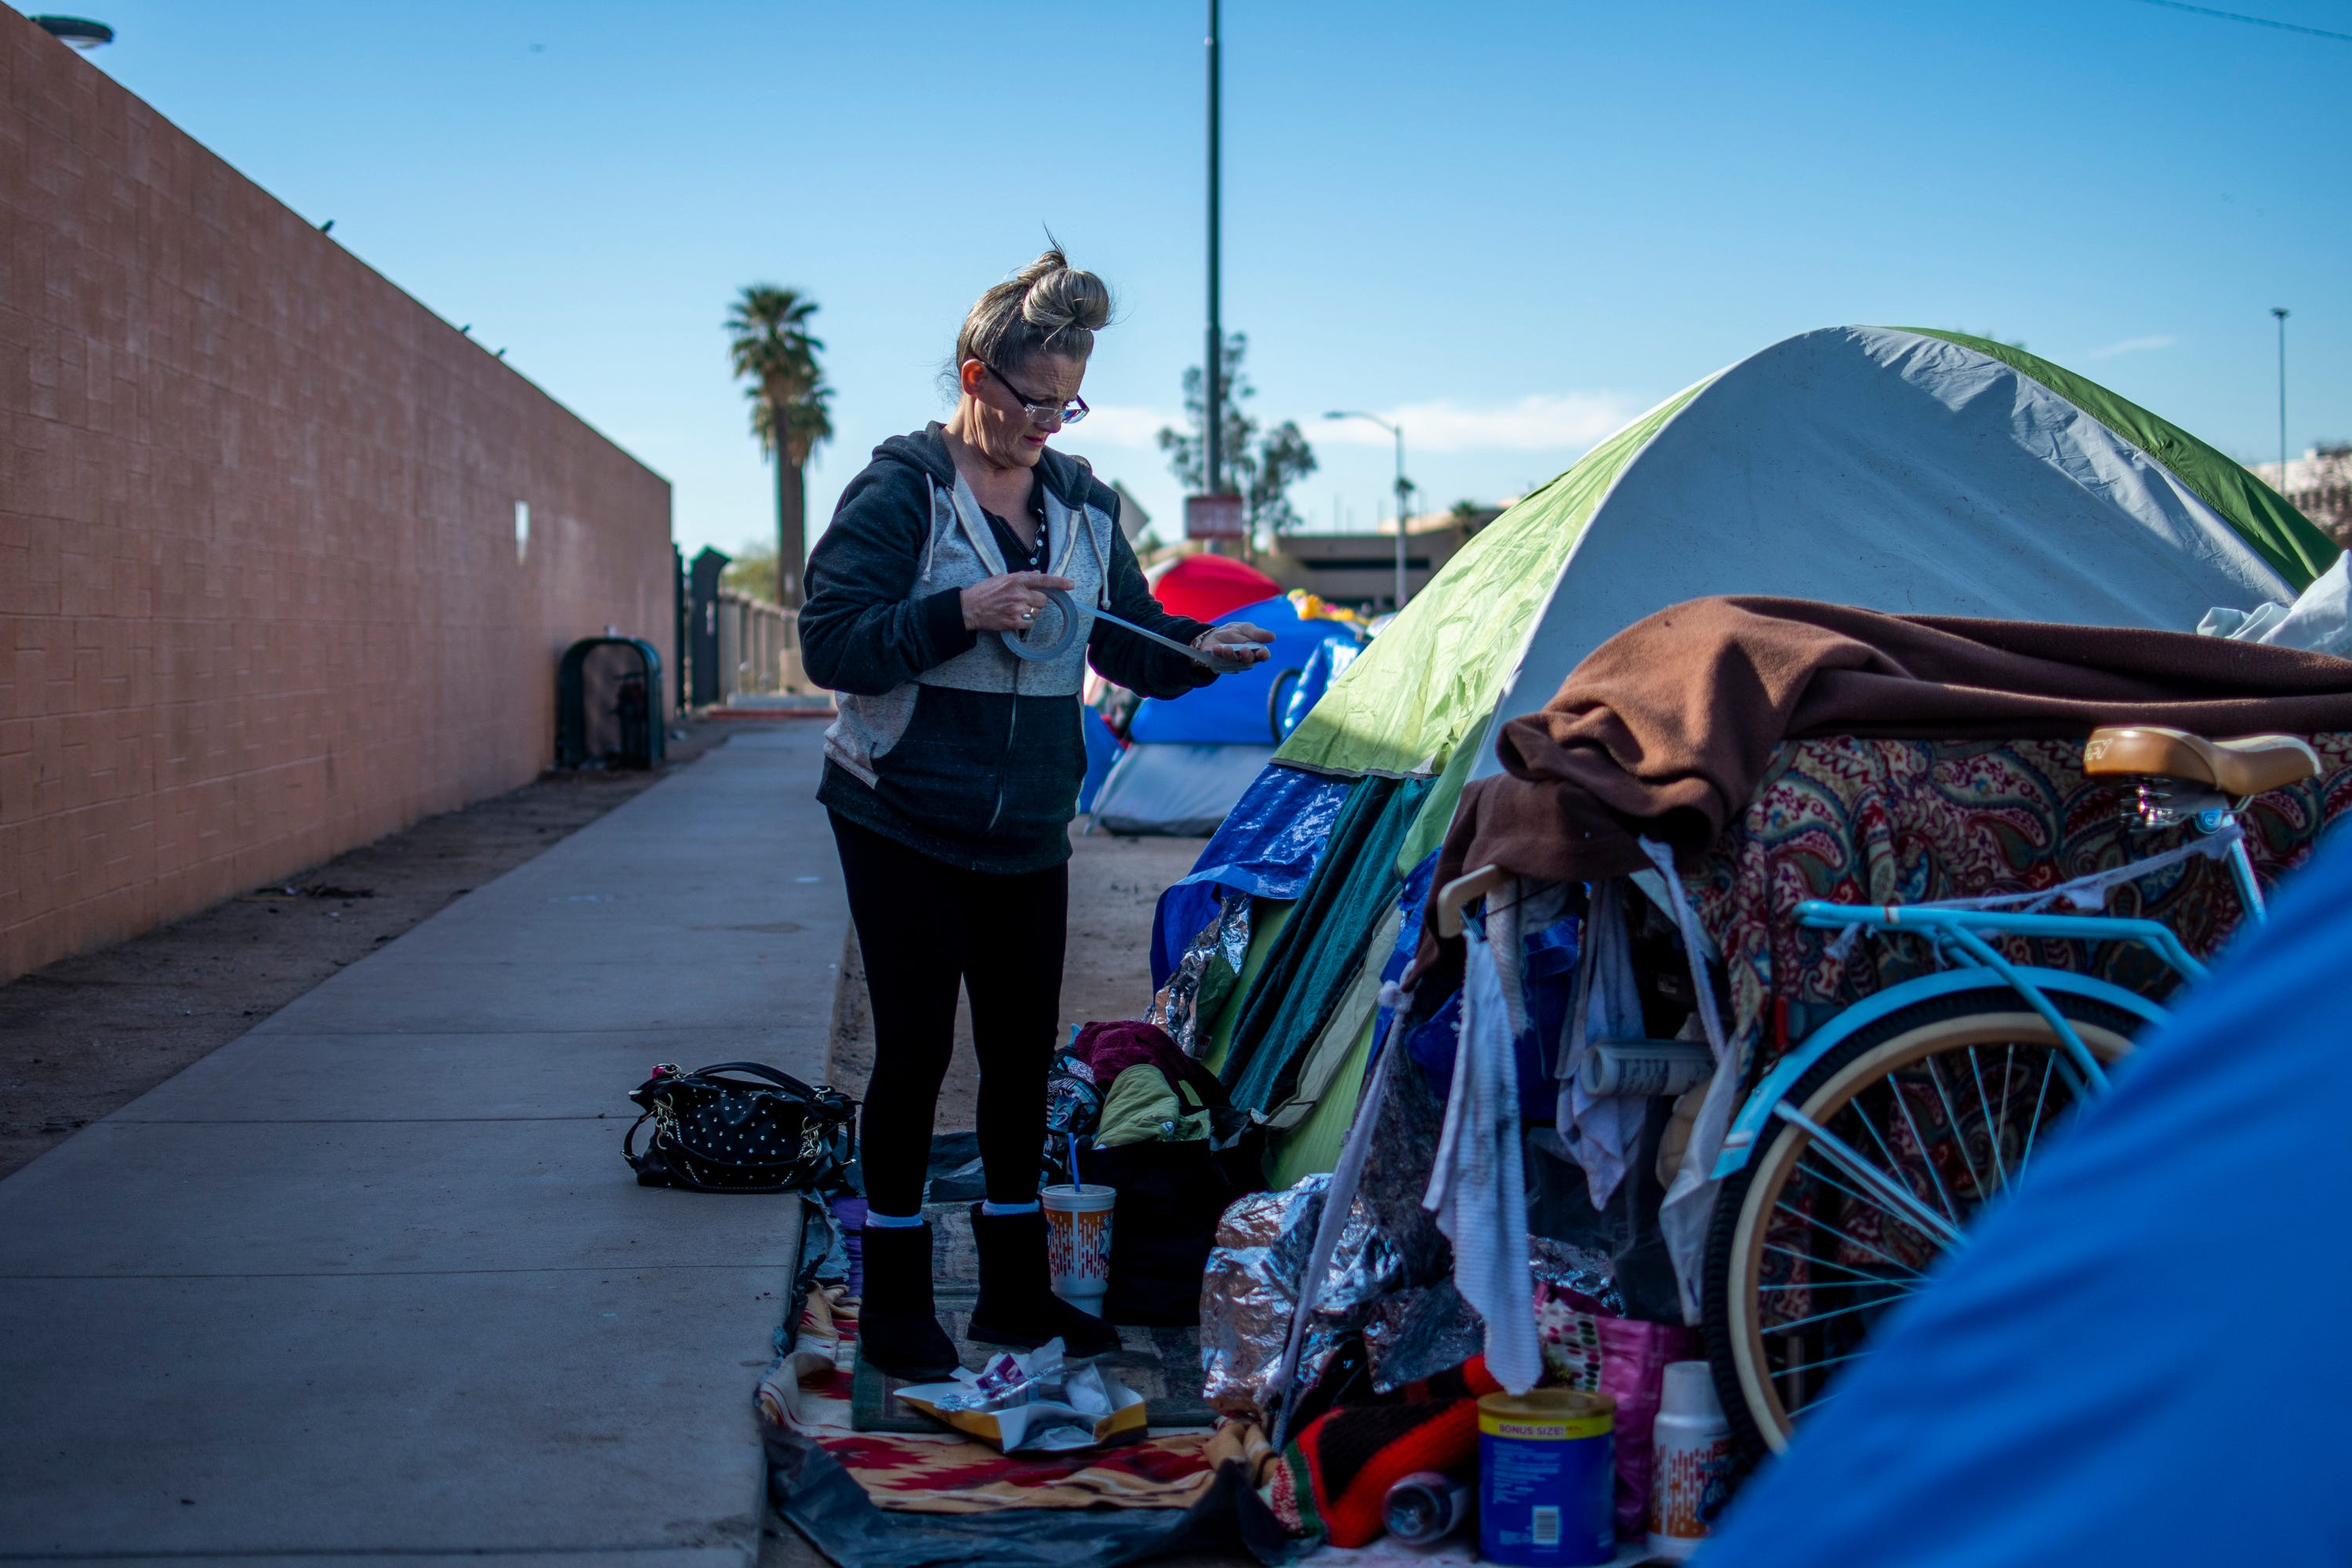 Darlene Carchedi makes a lint roller out of duct tape outside her tent in downtown Phoenix on Jan. 3, 2020. She says that when officials clean up homeless encampments, the trauma of being homeless repeats itself.